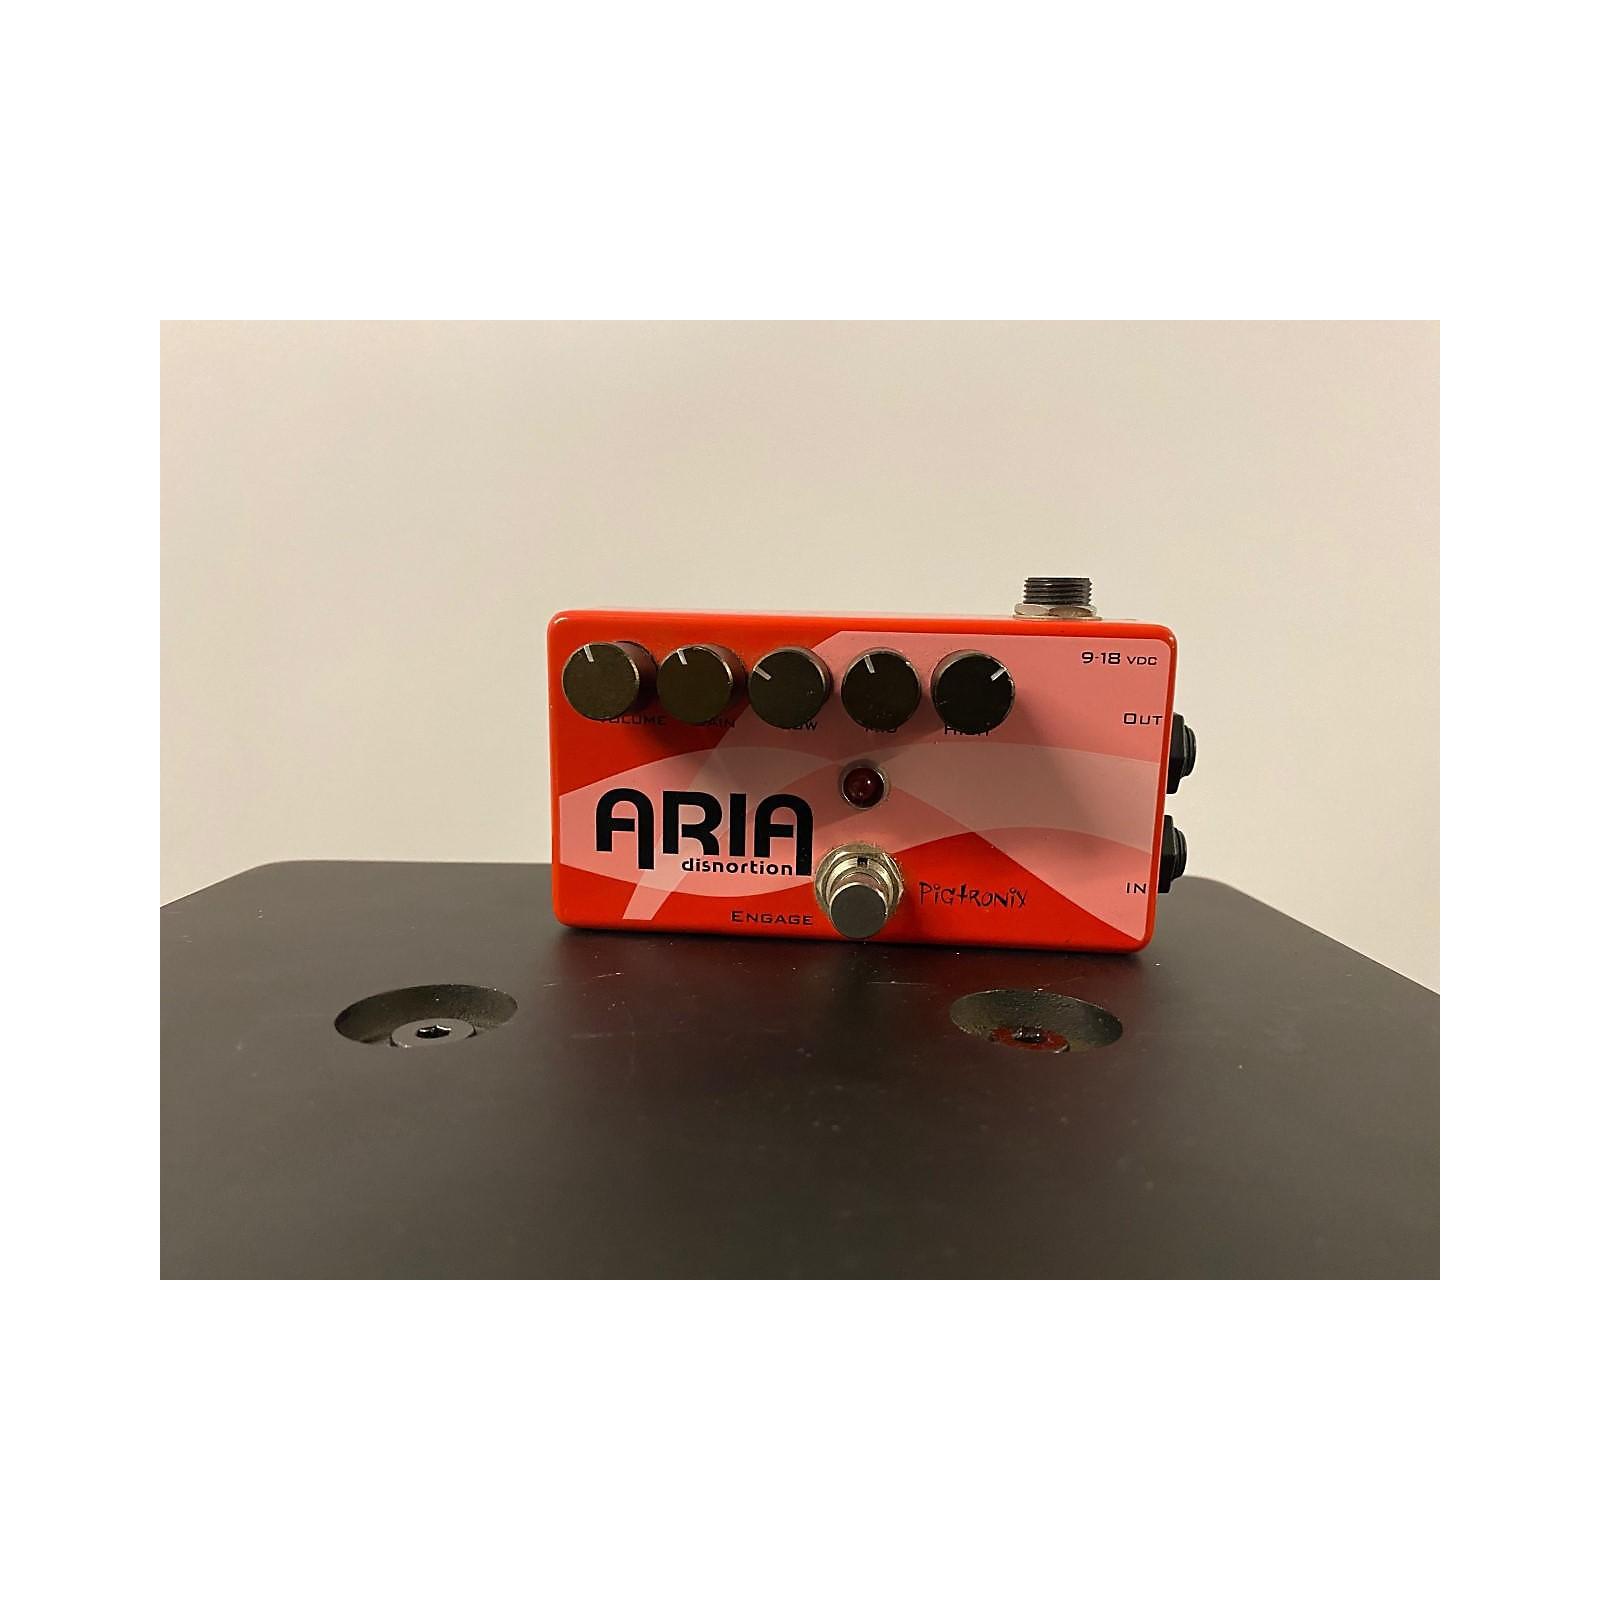 Pigtronix Aria Distortion Effect Pedal